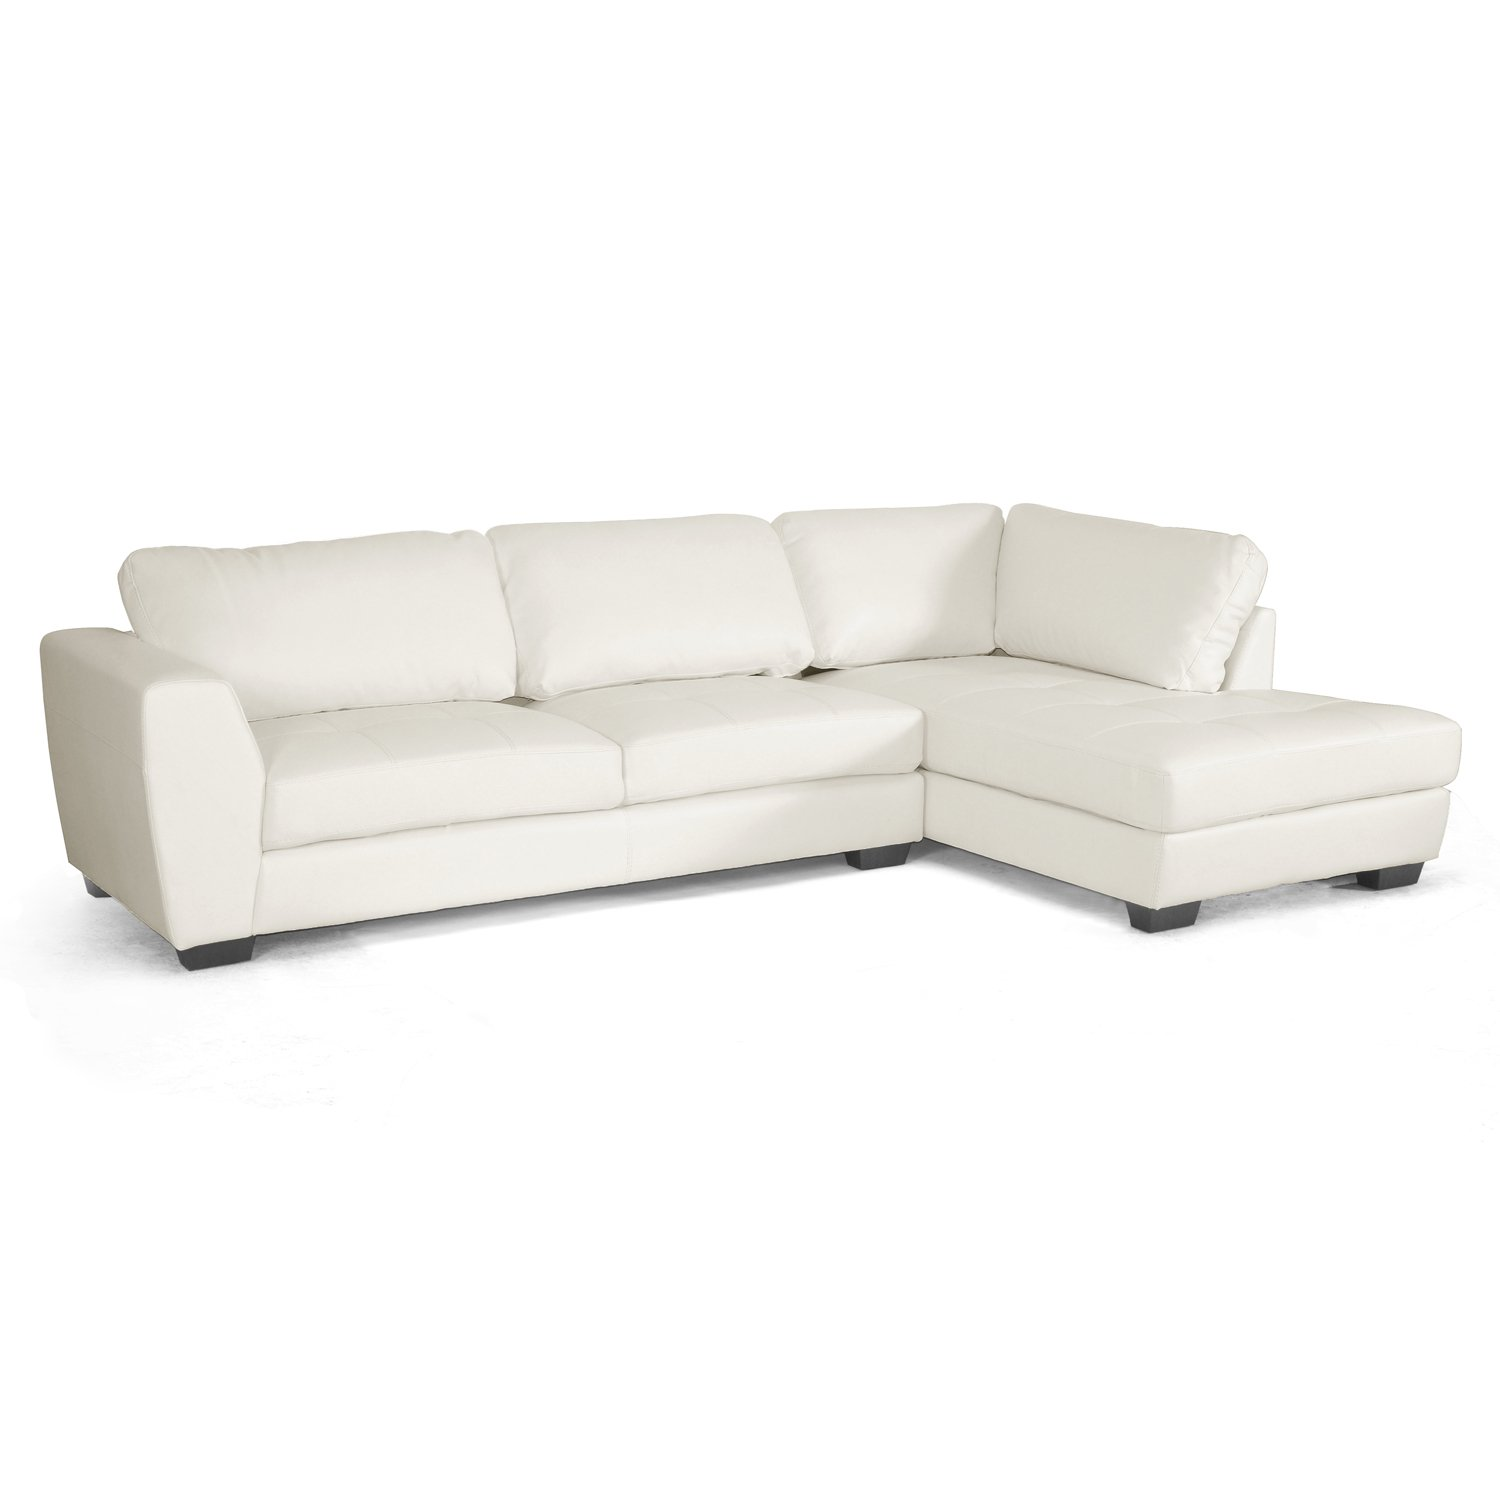 Amazon Com Baxton Studio Orland Leather Modern Sectional Sofa Set